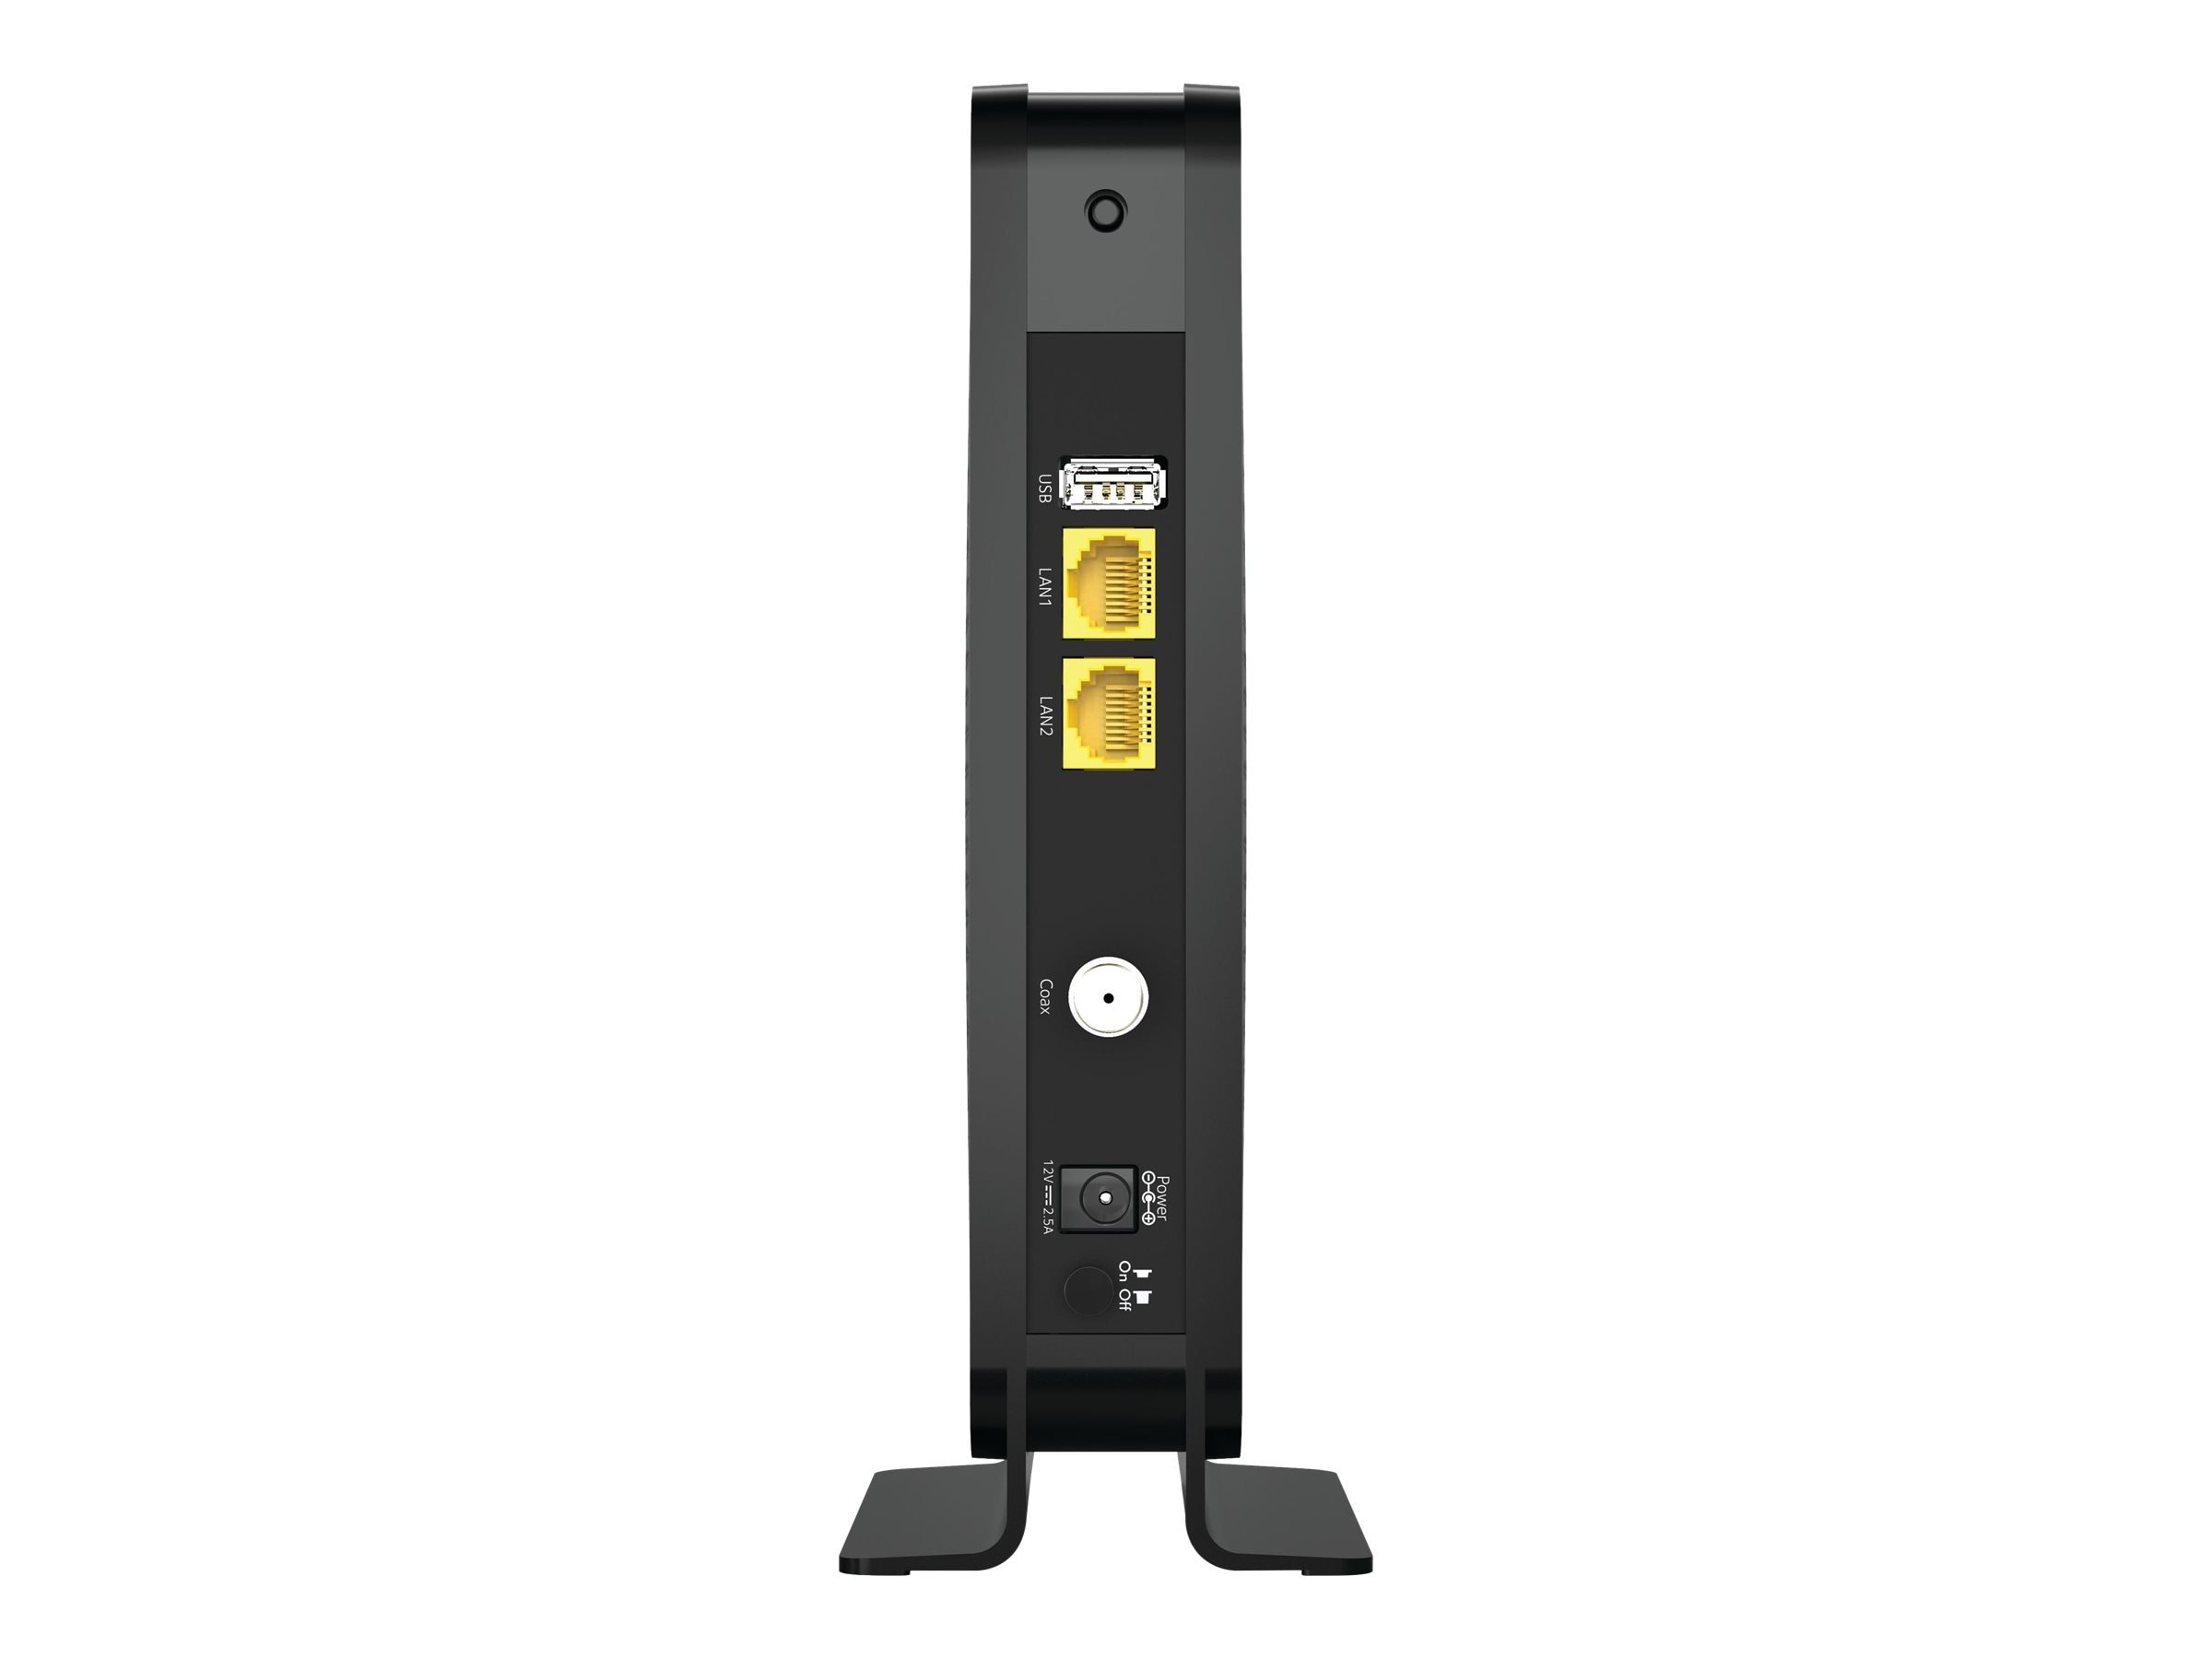 Netgear N600 Wi-Fi Cable Modem Router, C3700-100NAS